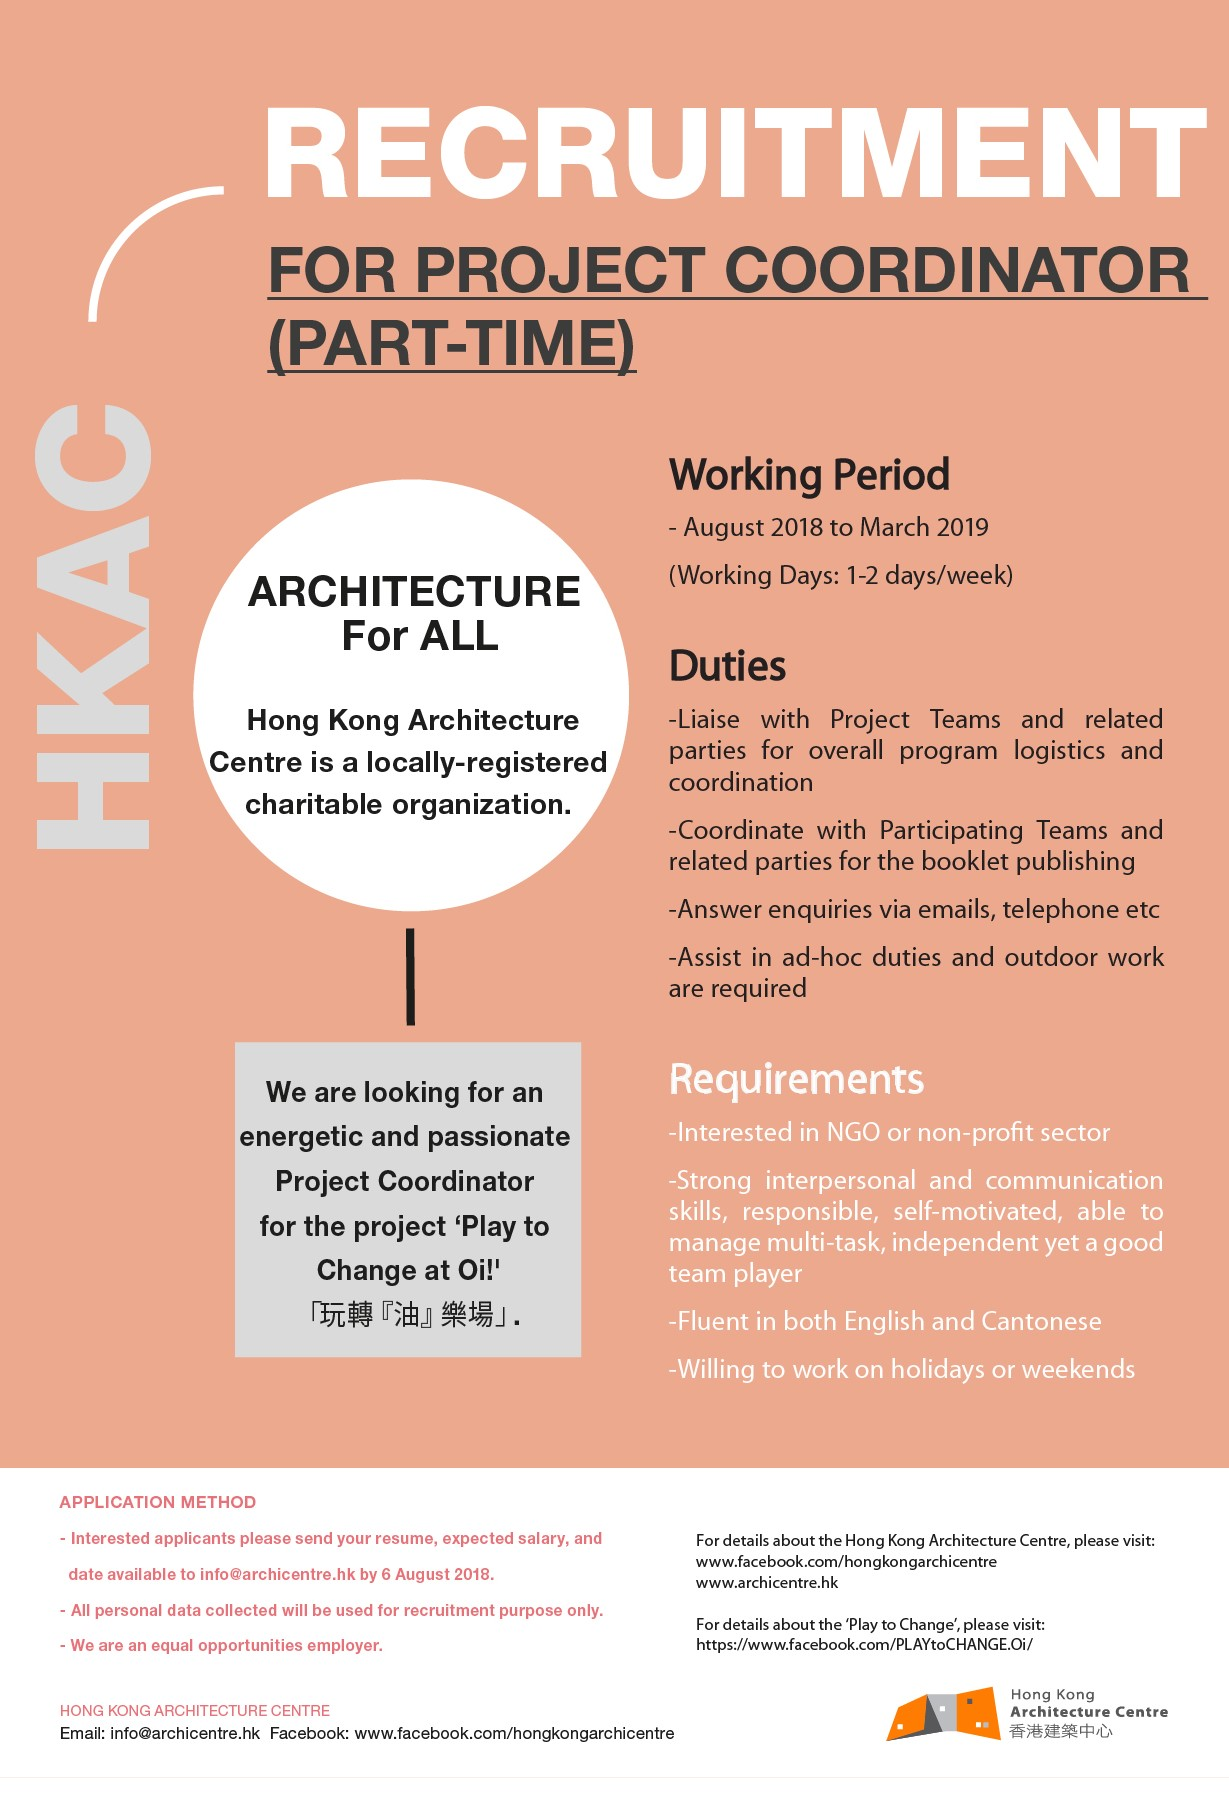 - we are looking for an energetic and passionateProject Coordinator for the project 'Play toChange at Oi!'「玩 轉『油』樂場」.interested applicants please send us your resume, expected salary, and date available at info@archicentre.hk by 6 August 2018